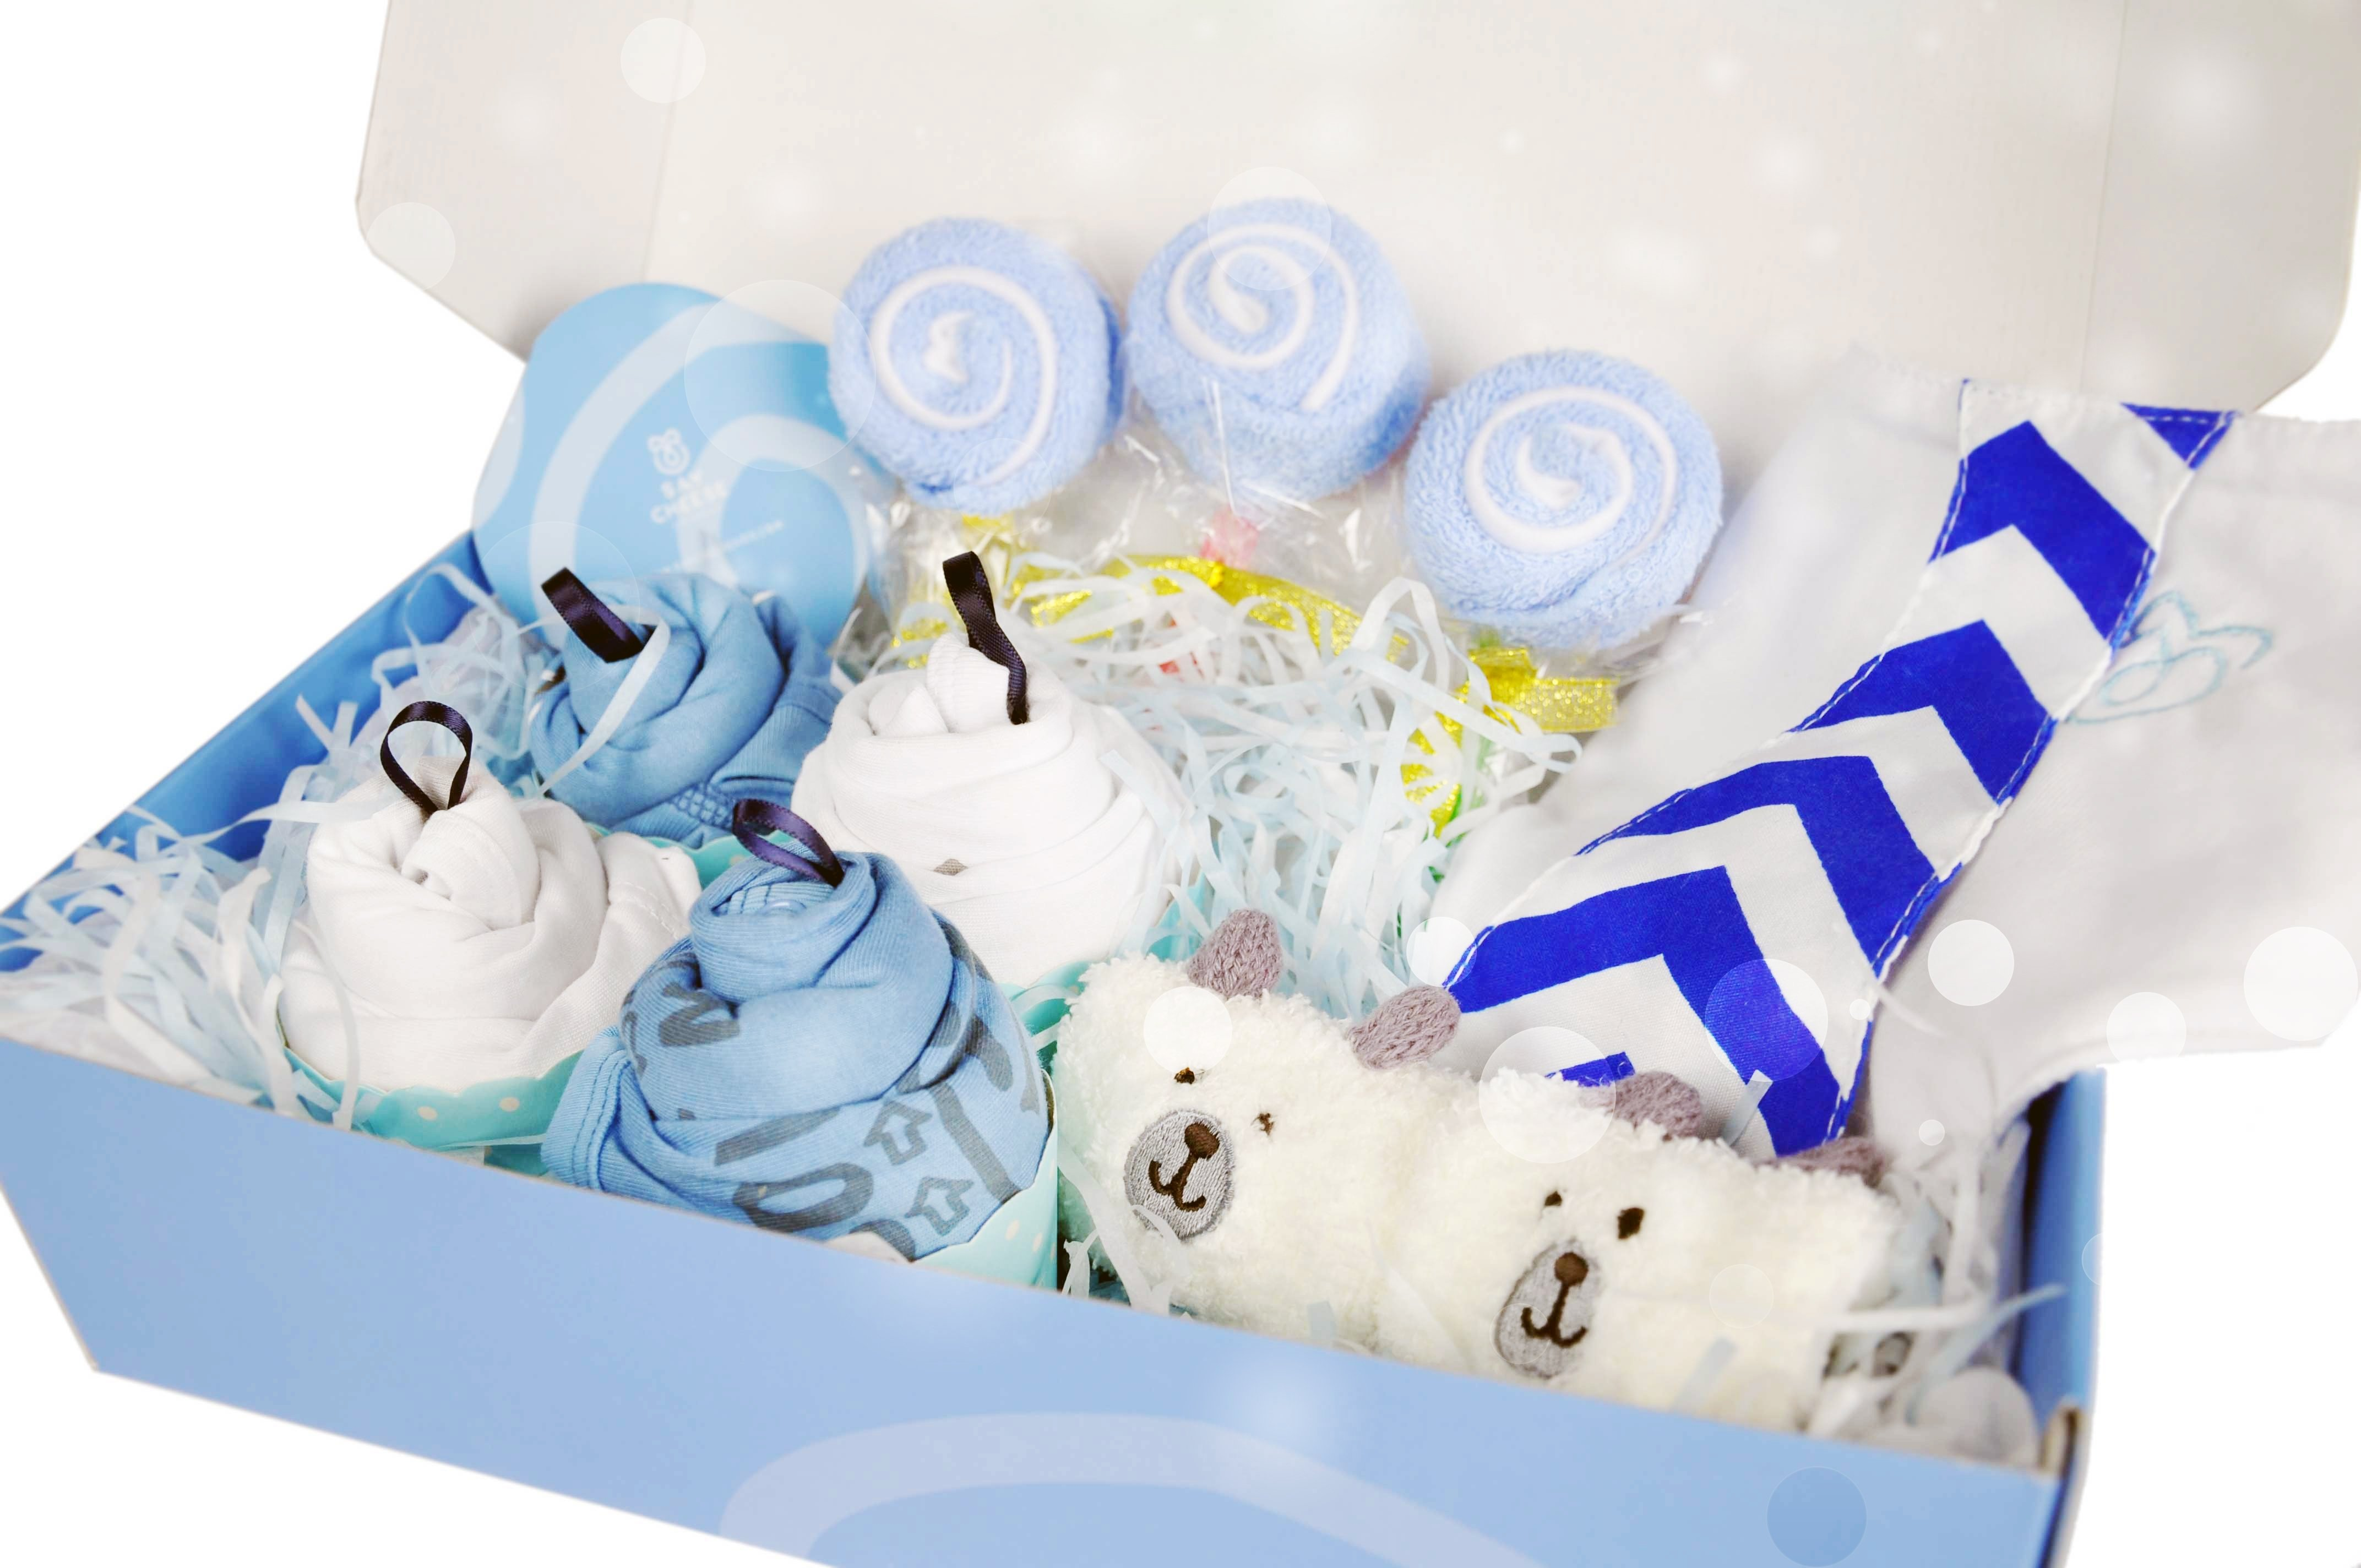 10 Stunning Baby Gift Ideas For Boys cordial guests ideas for guests photo baby shower gifts ideas 2020